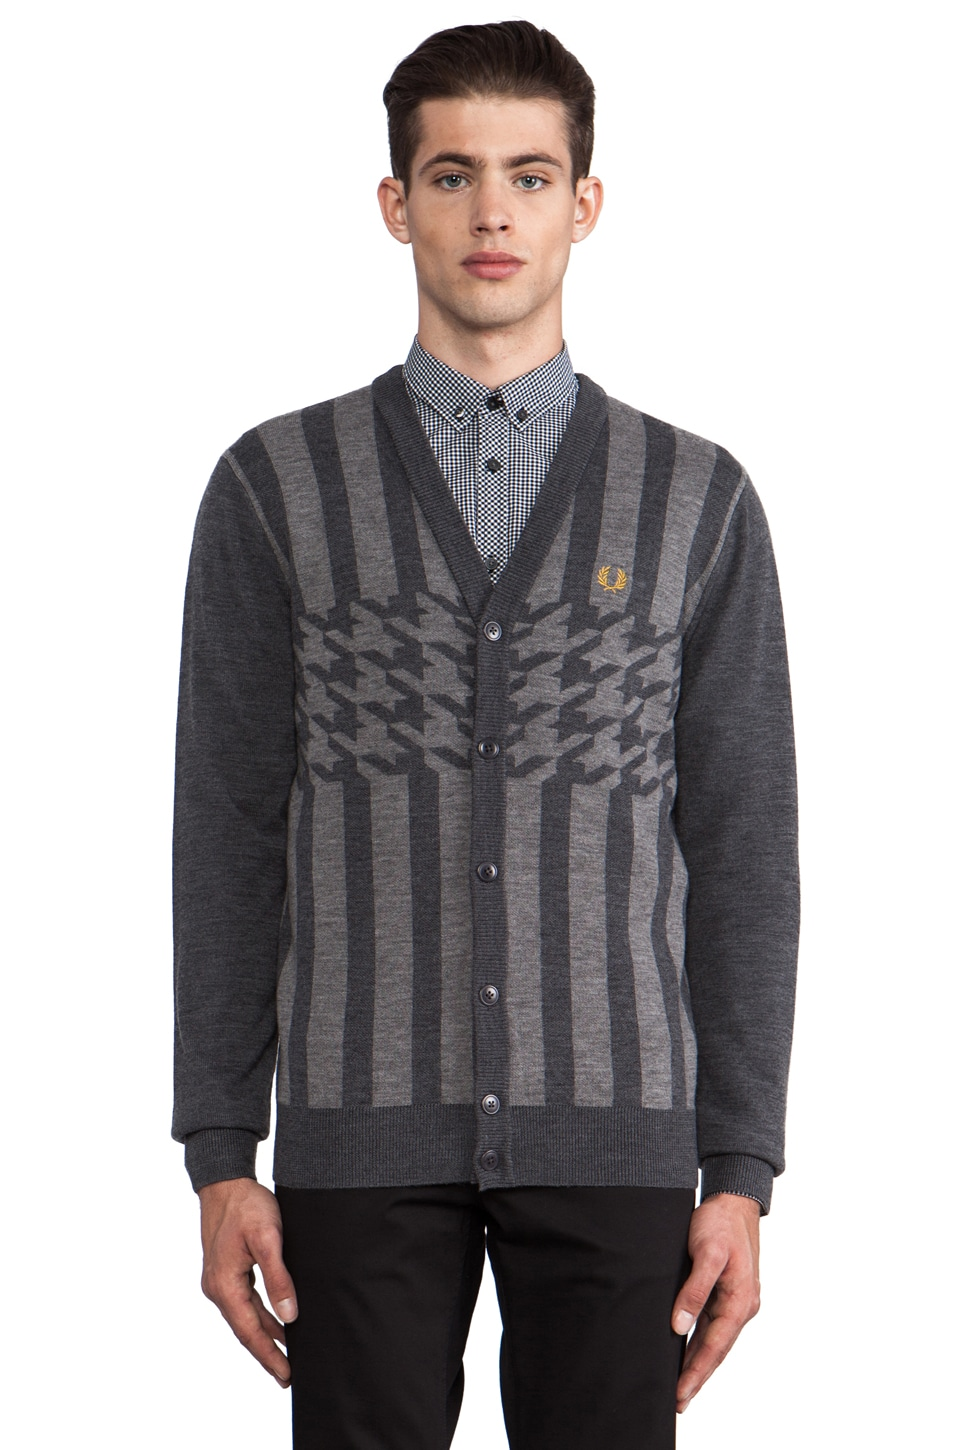 Fred Perry 45's Knitted Cardigan in Graphite Marl